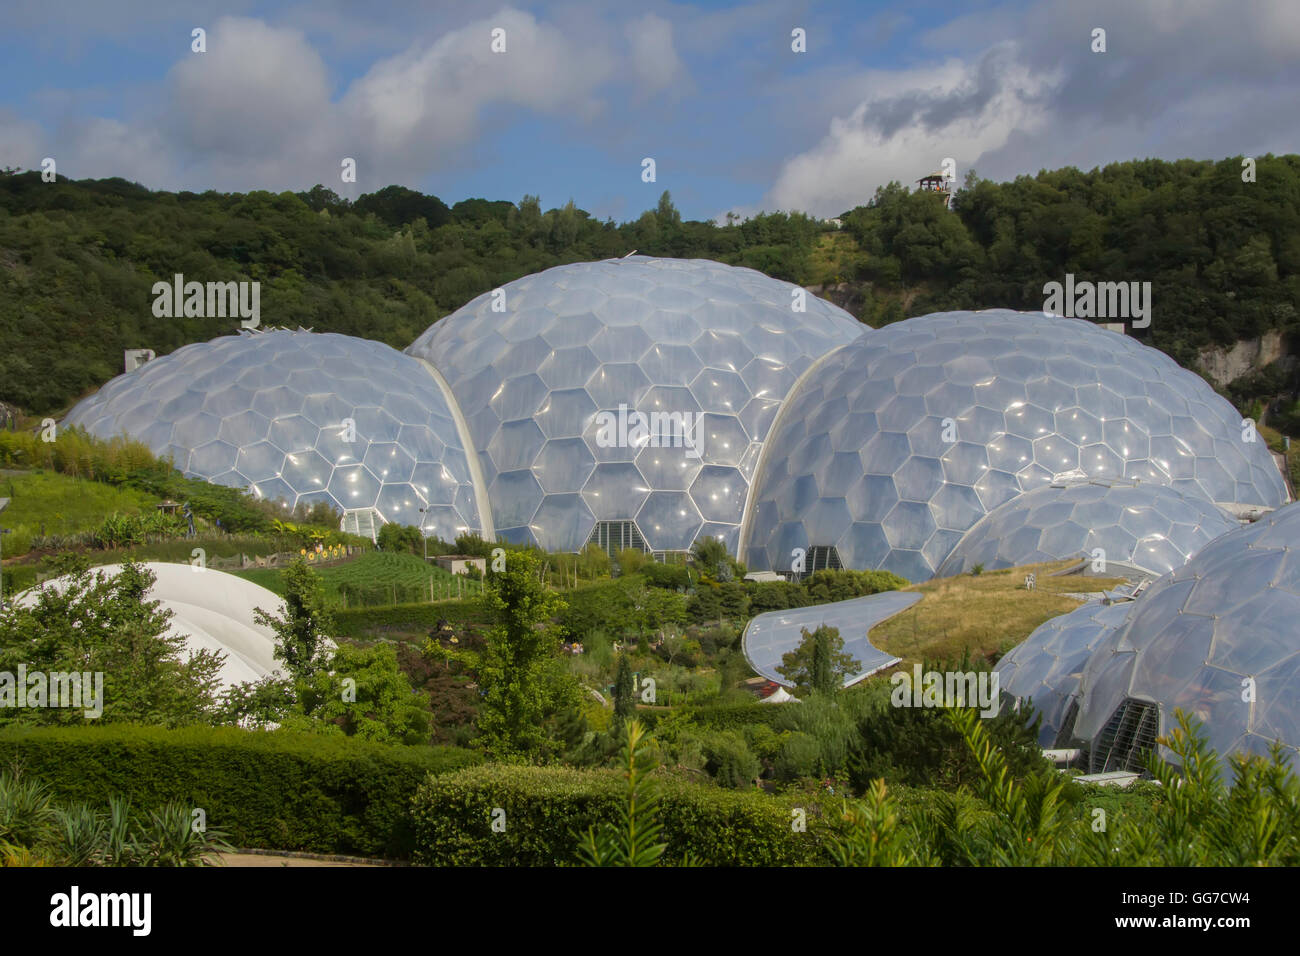 the biome's of the Eden project in cornwall england - Stock Image